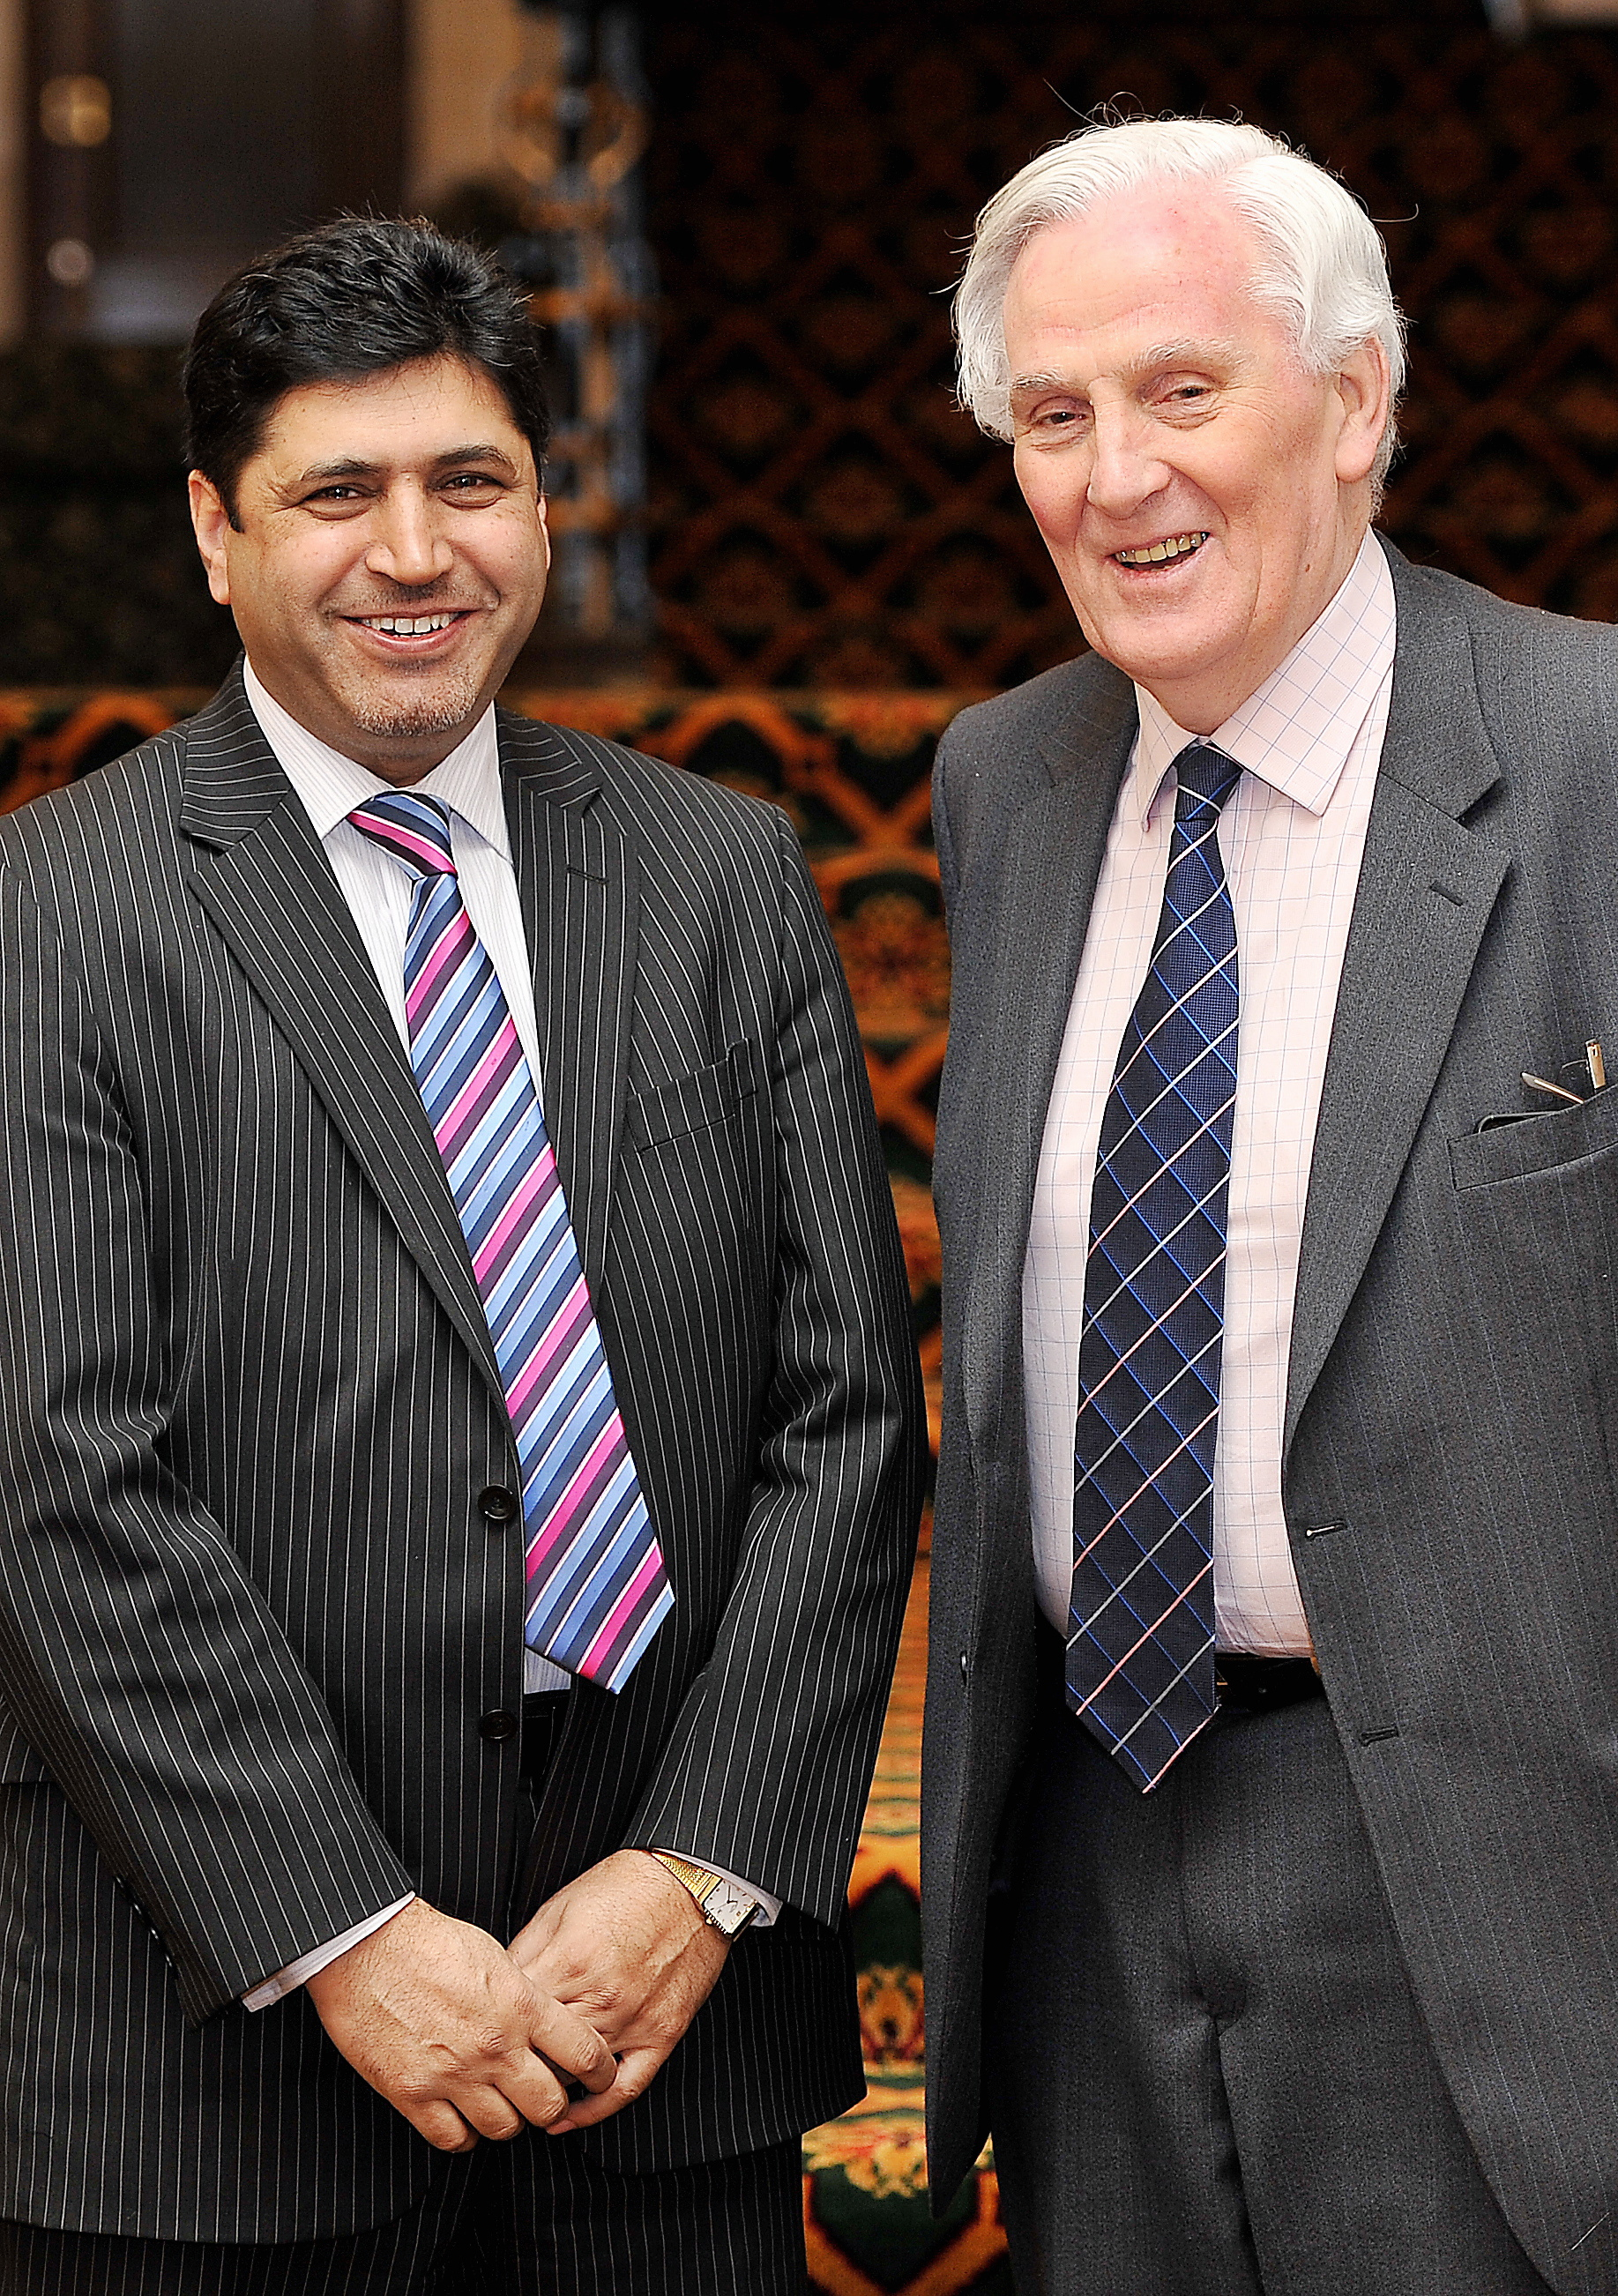 Dr Mohammed Iqbal and Sir James Hill, vice-chairman and chairman respectively of Bradford Matters